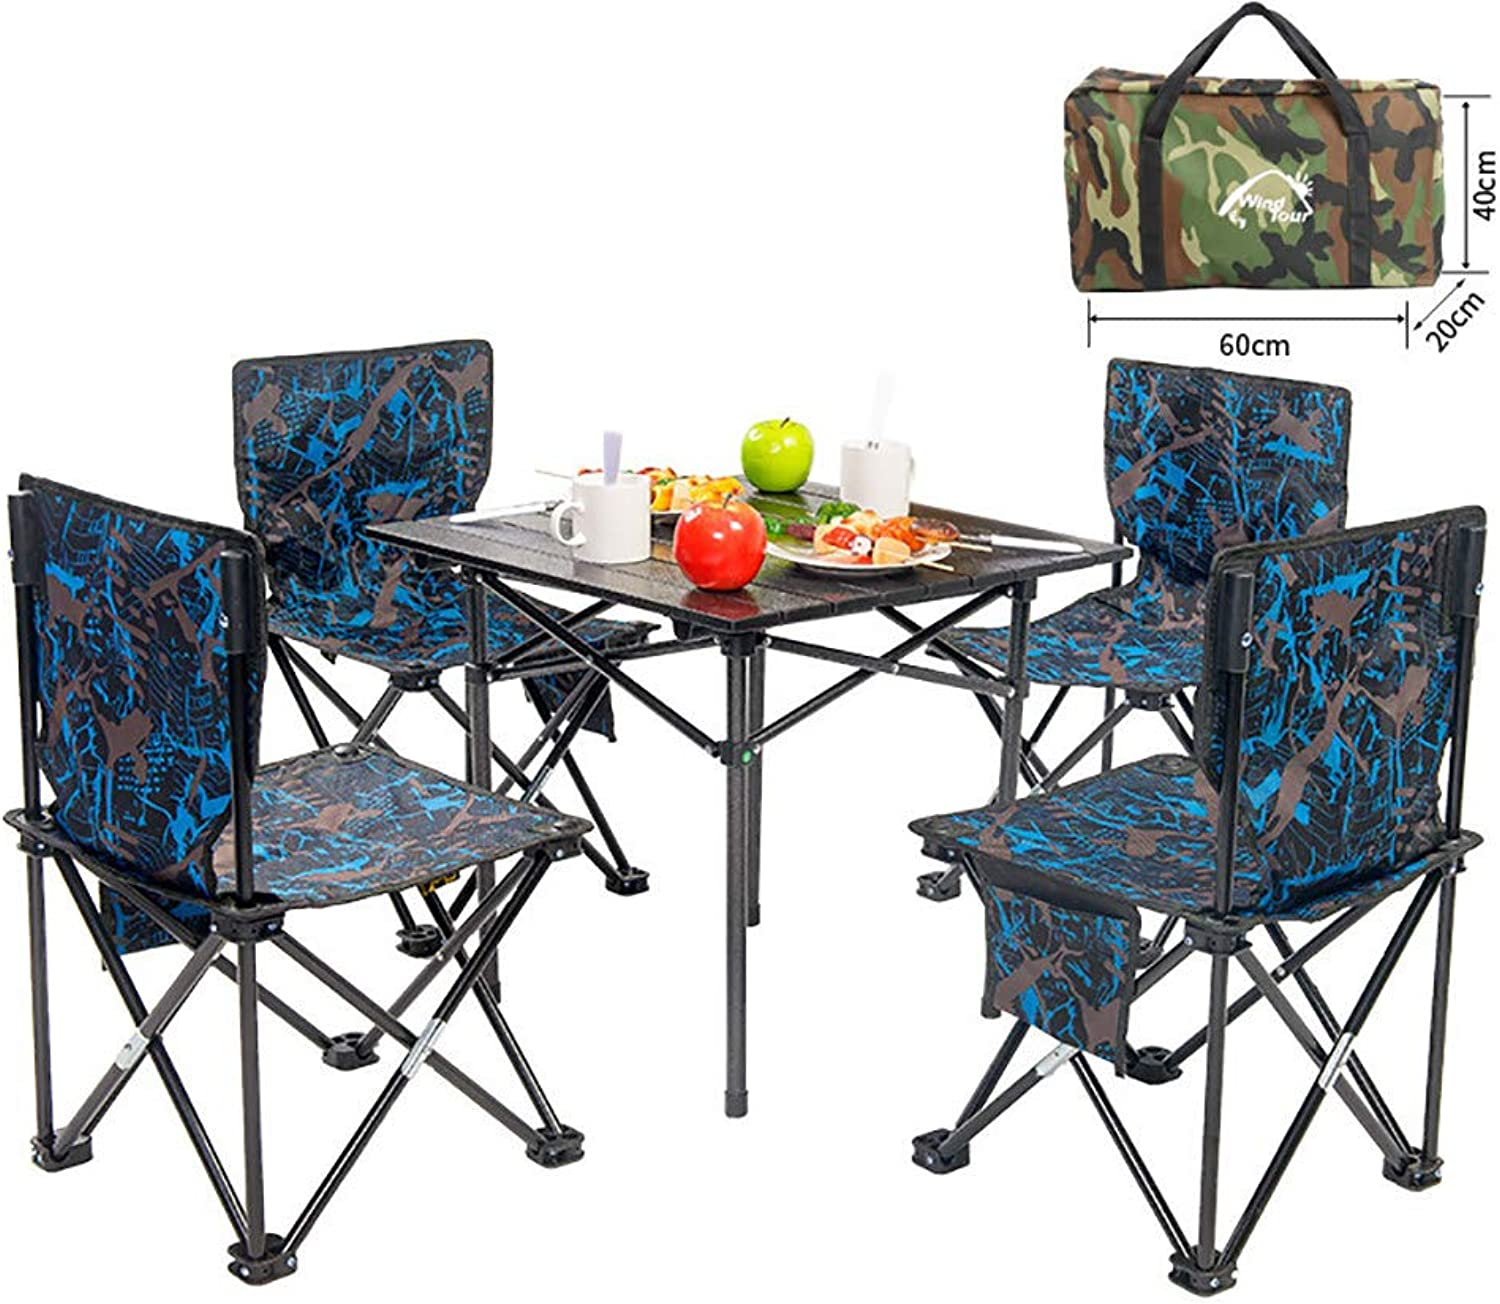 Aluminum Folding Table, Easy to Clean, Picnic Light, Camp, Beach, Barbecue, Hiking, Travel, Fishing,A